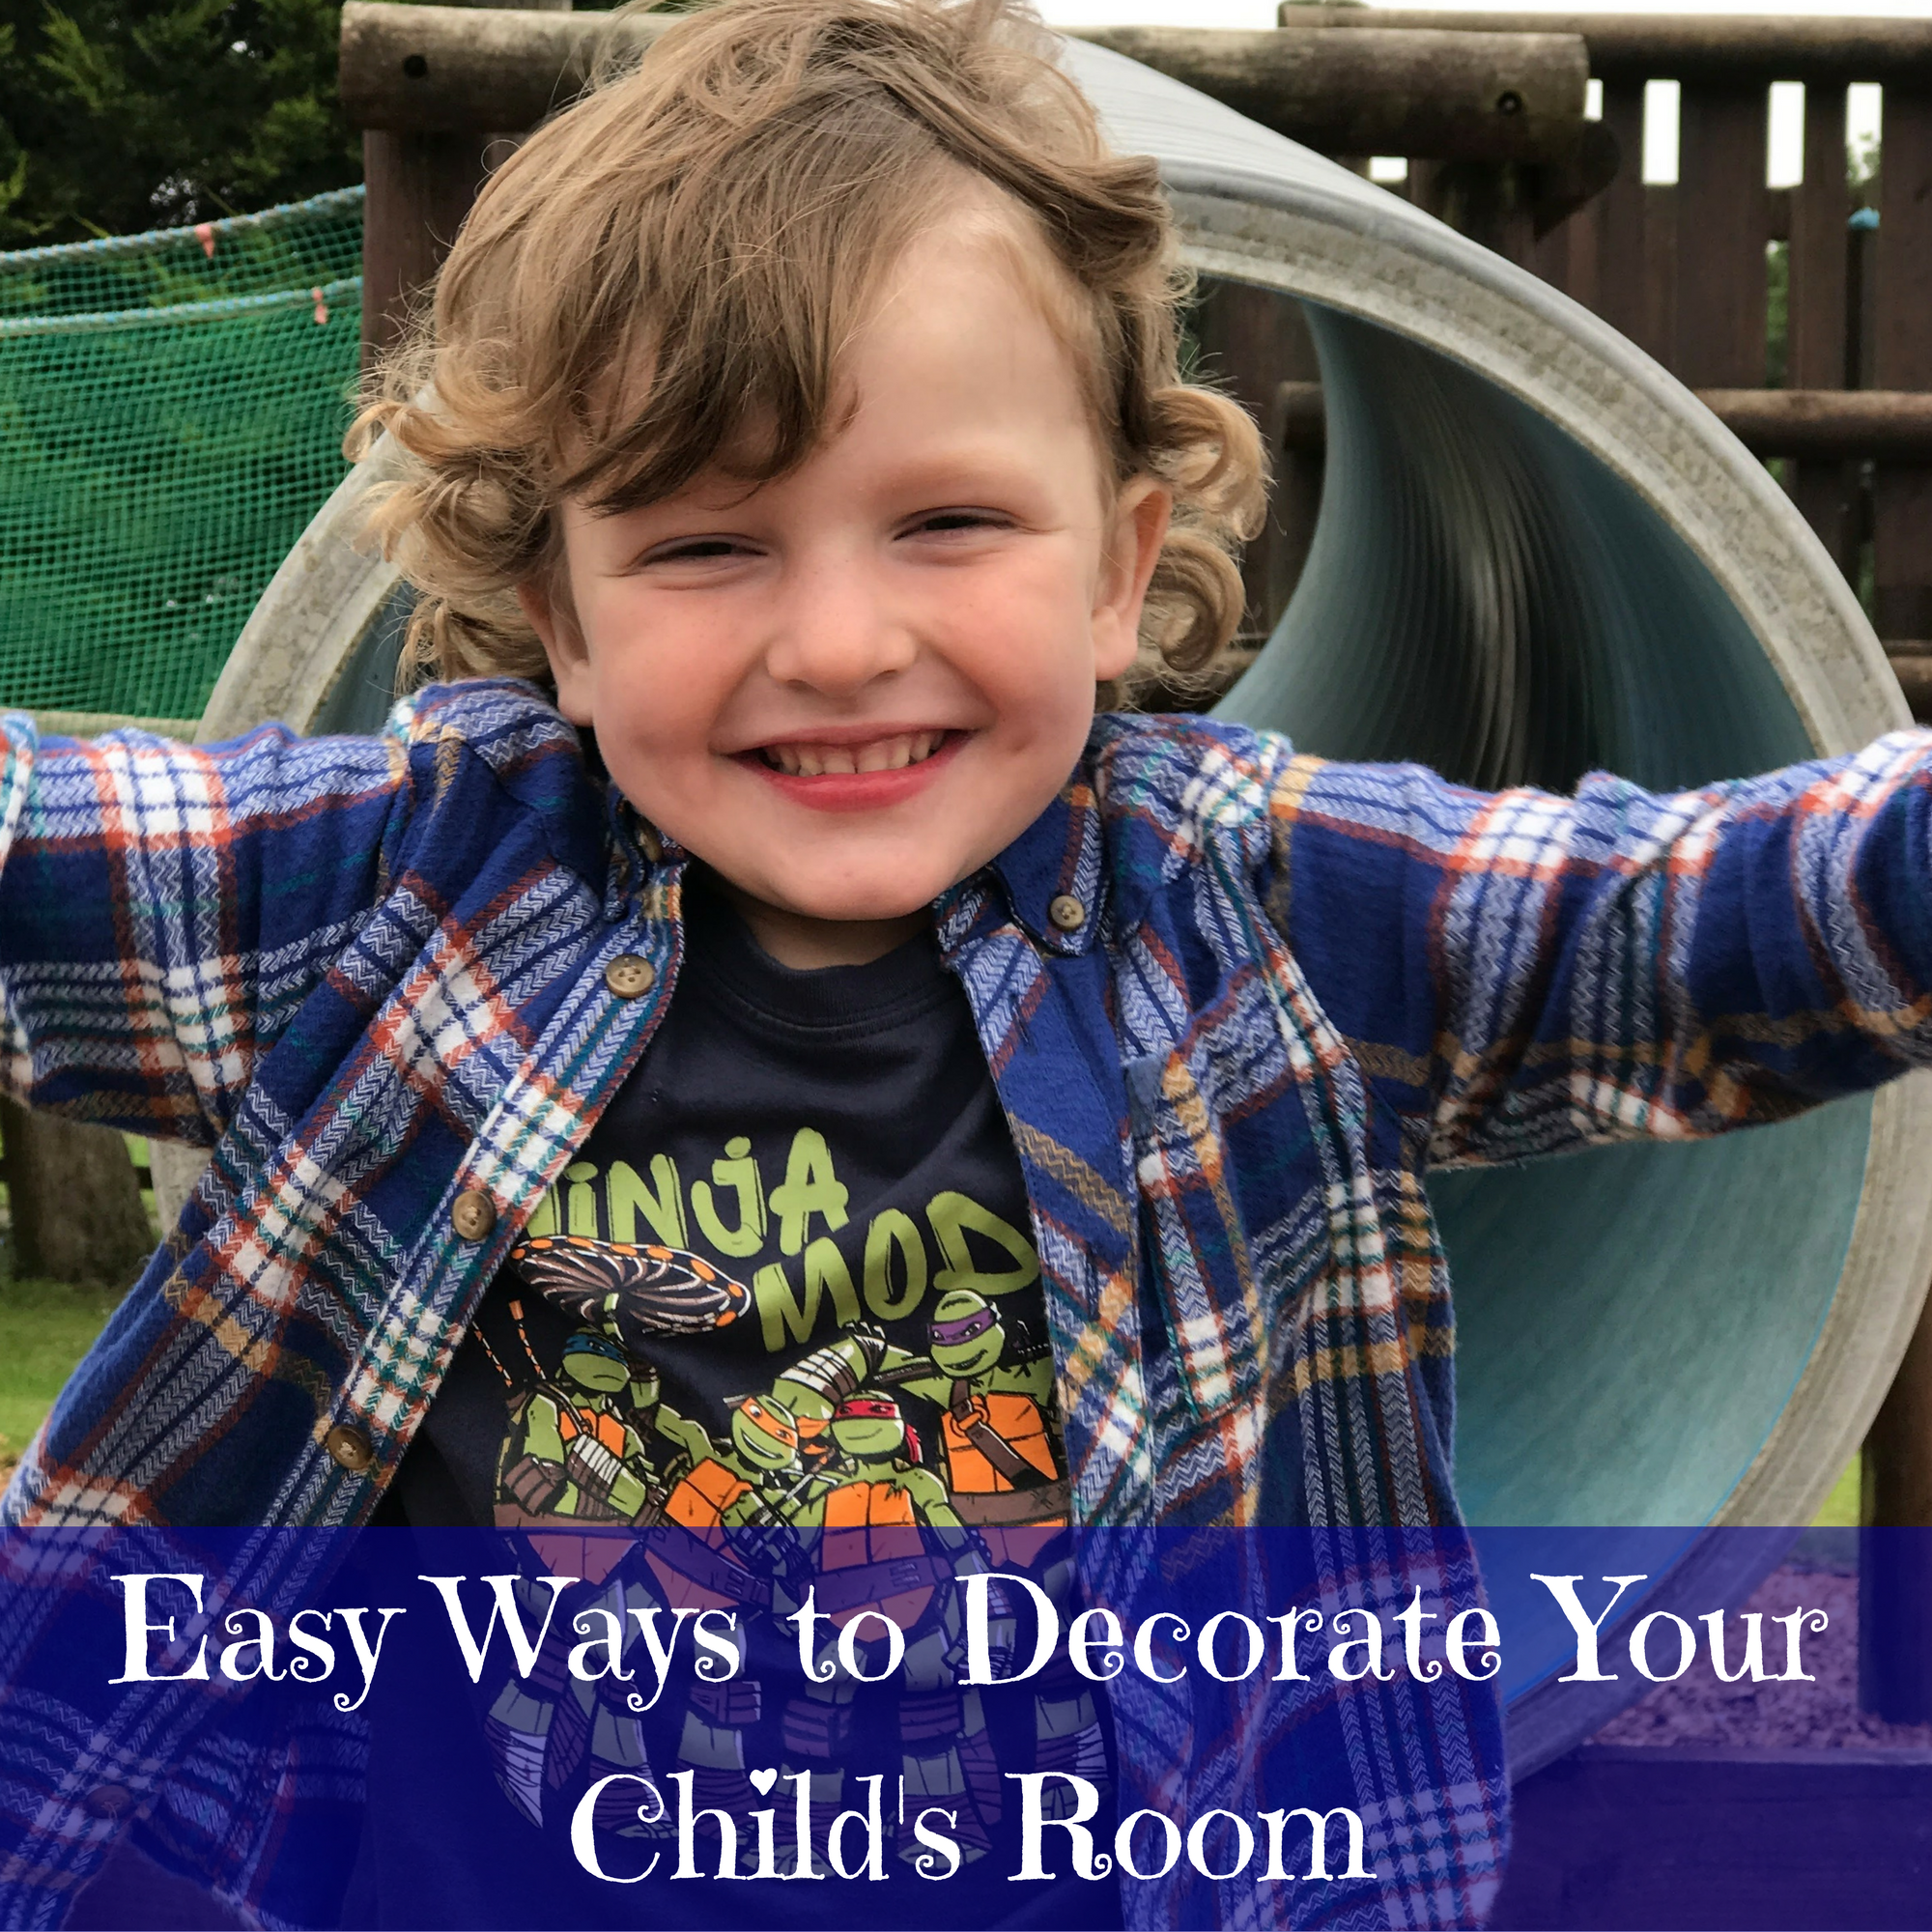 Easy Ways to Decorate Your Child's Room